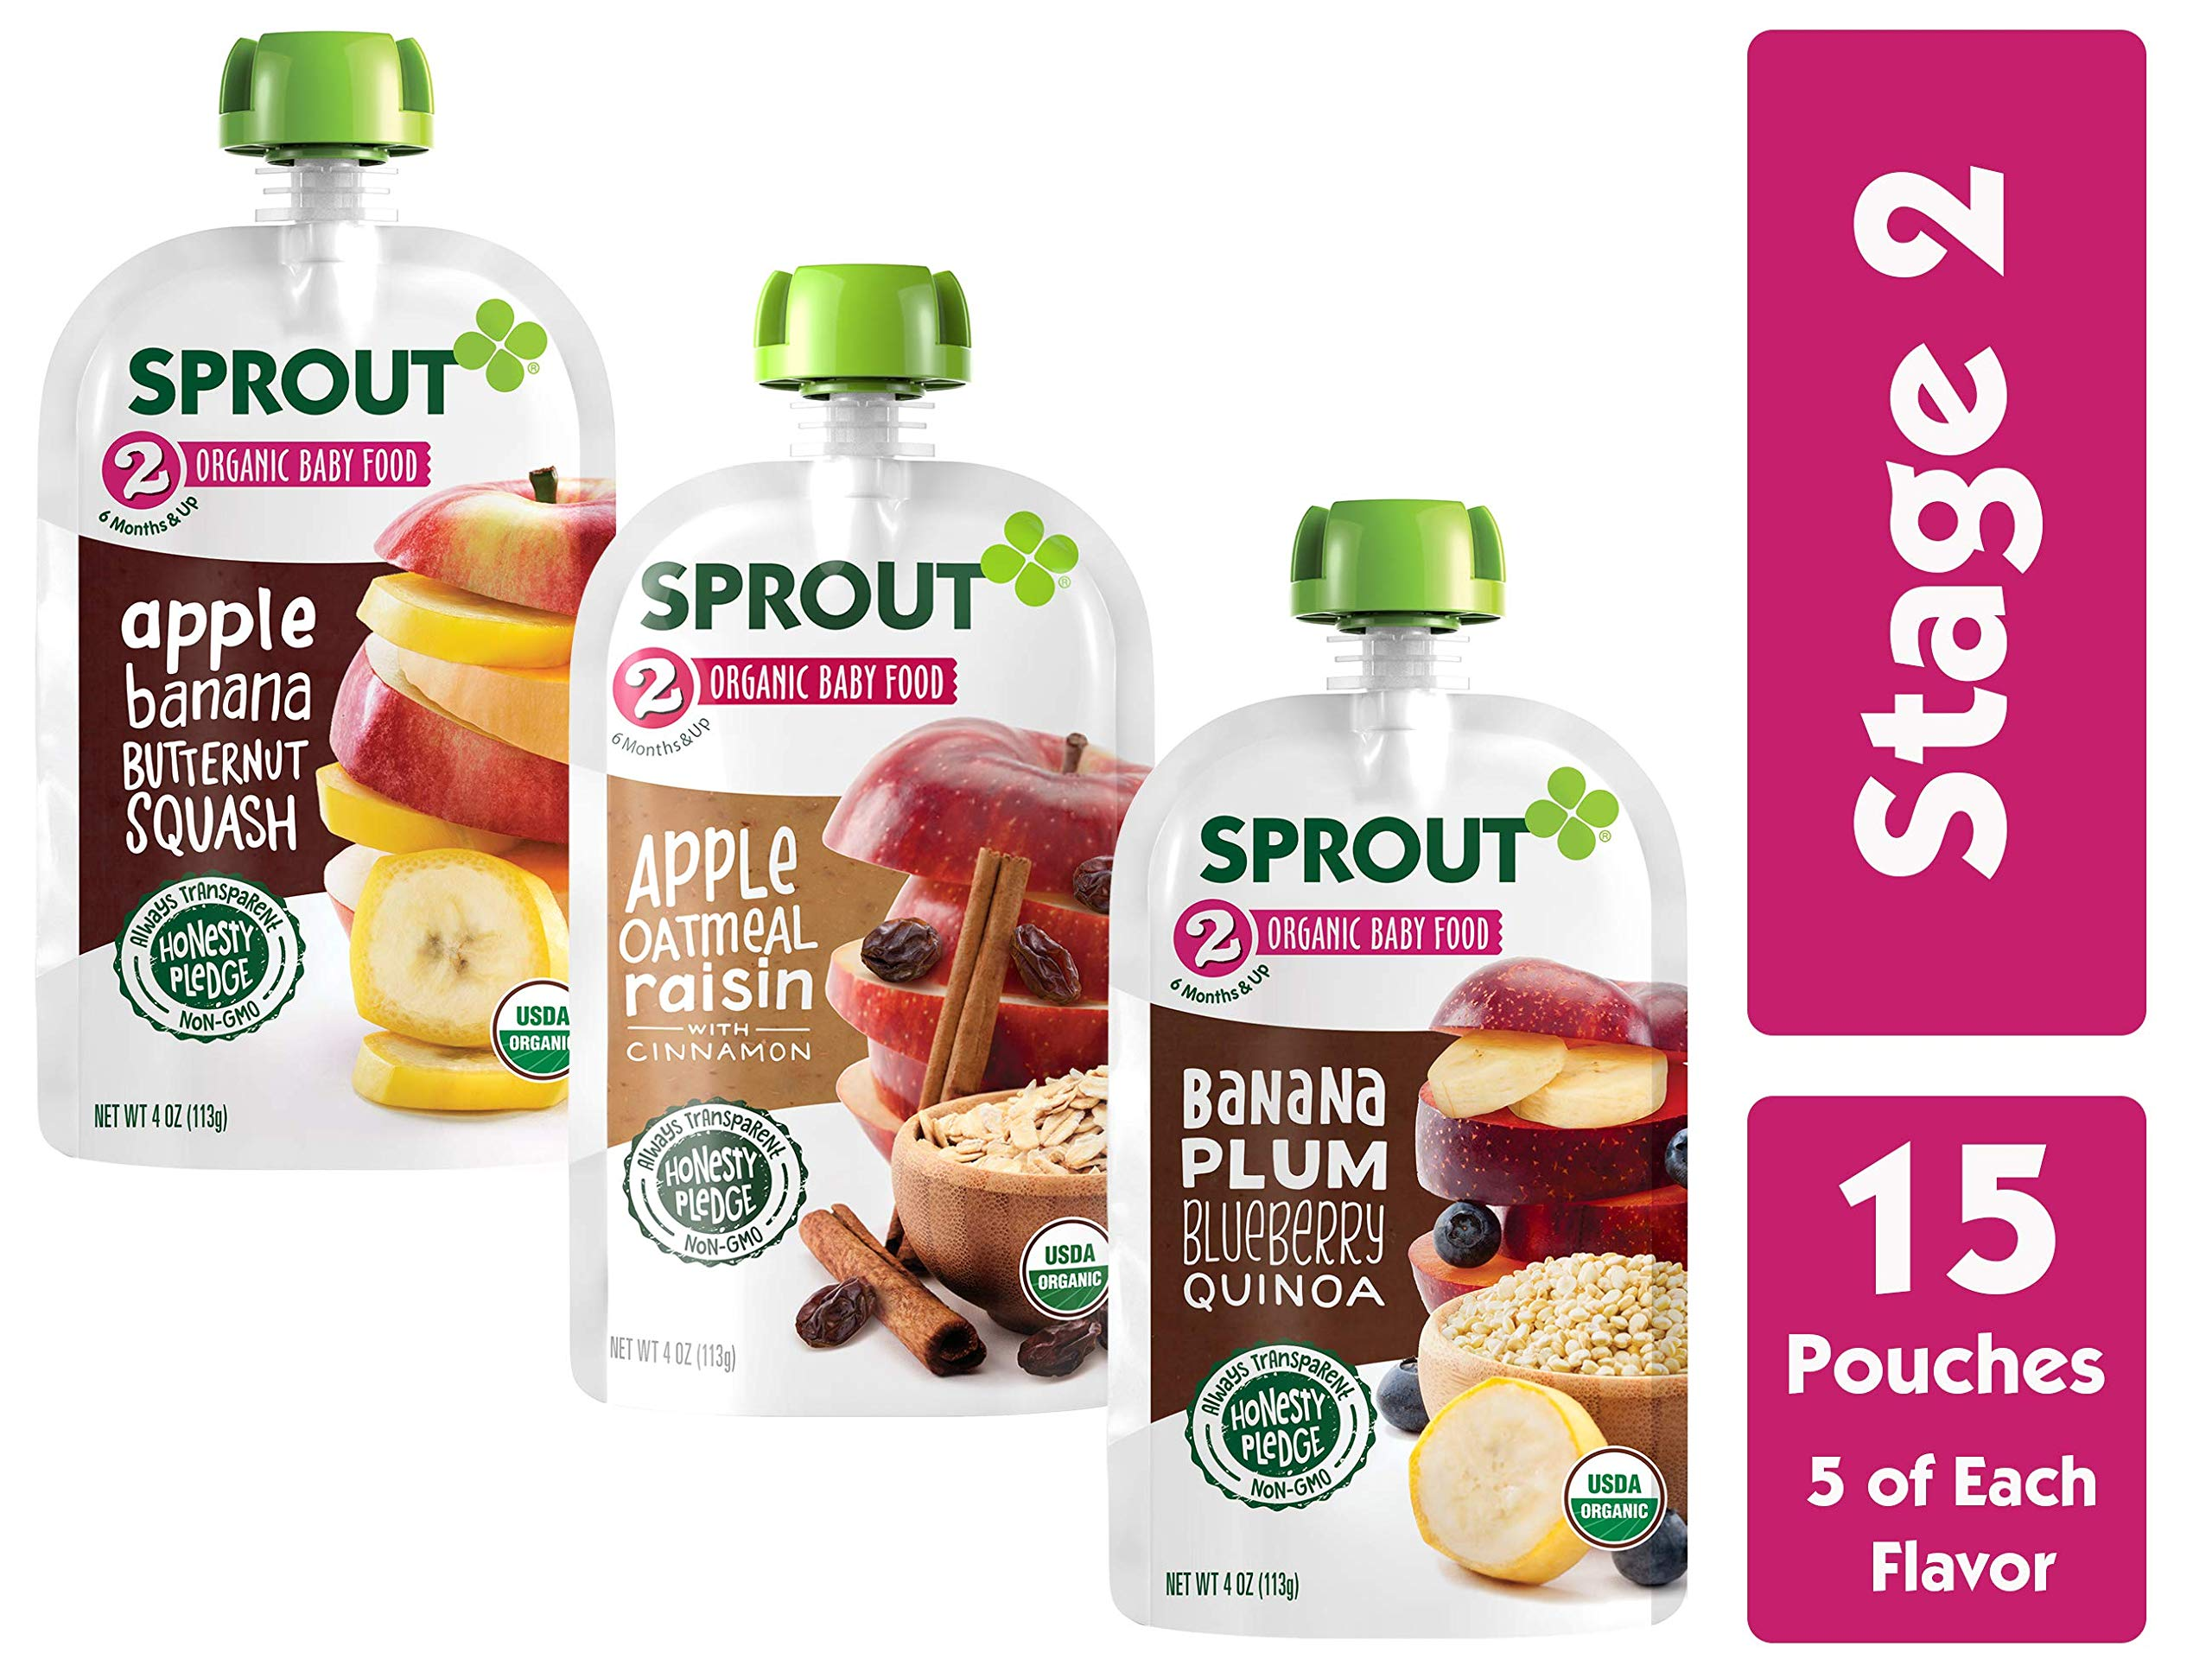 Sprout Organic Stage 2 Baby Food Pouches, Variety Pack, 4 Ounce (Pack of 15) 5 Each: Apple Oat Raisin w/ Cinnamon, Banana Plum Blueberry Quinoa & Apple Banana Butternut by Sprout